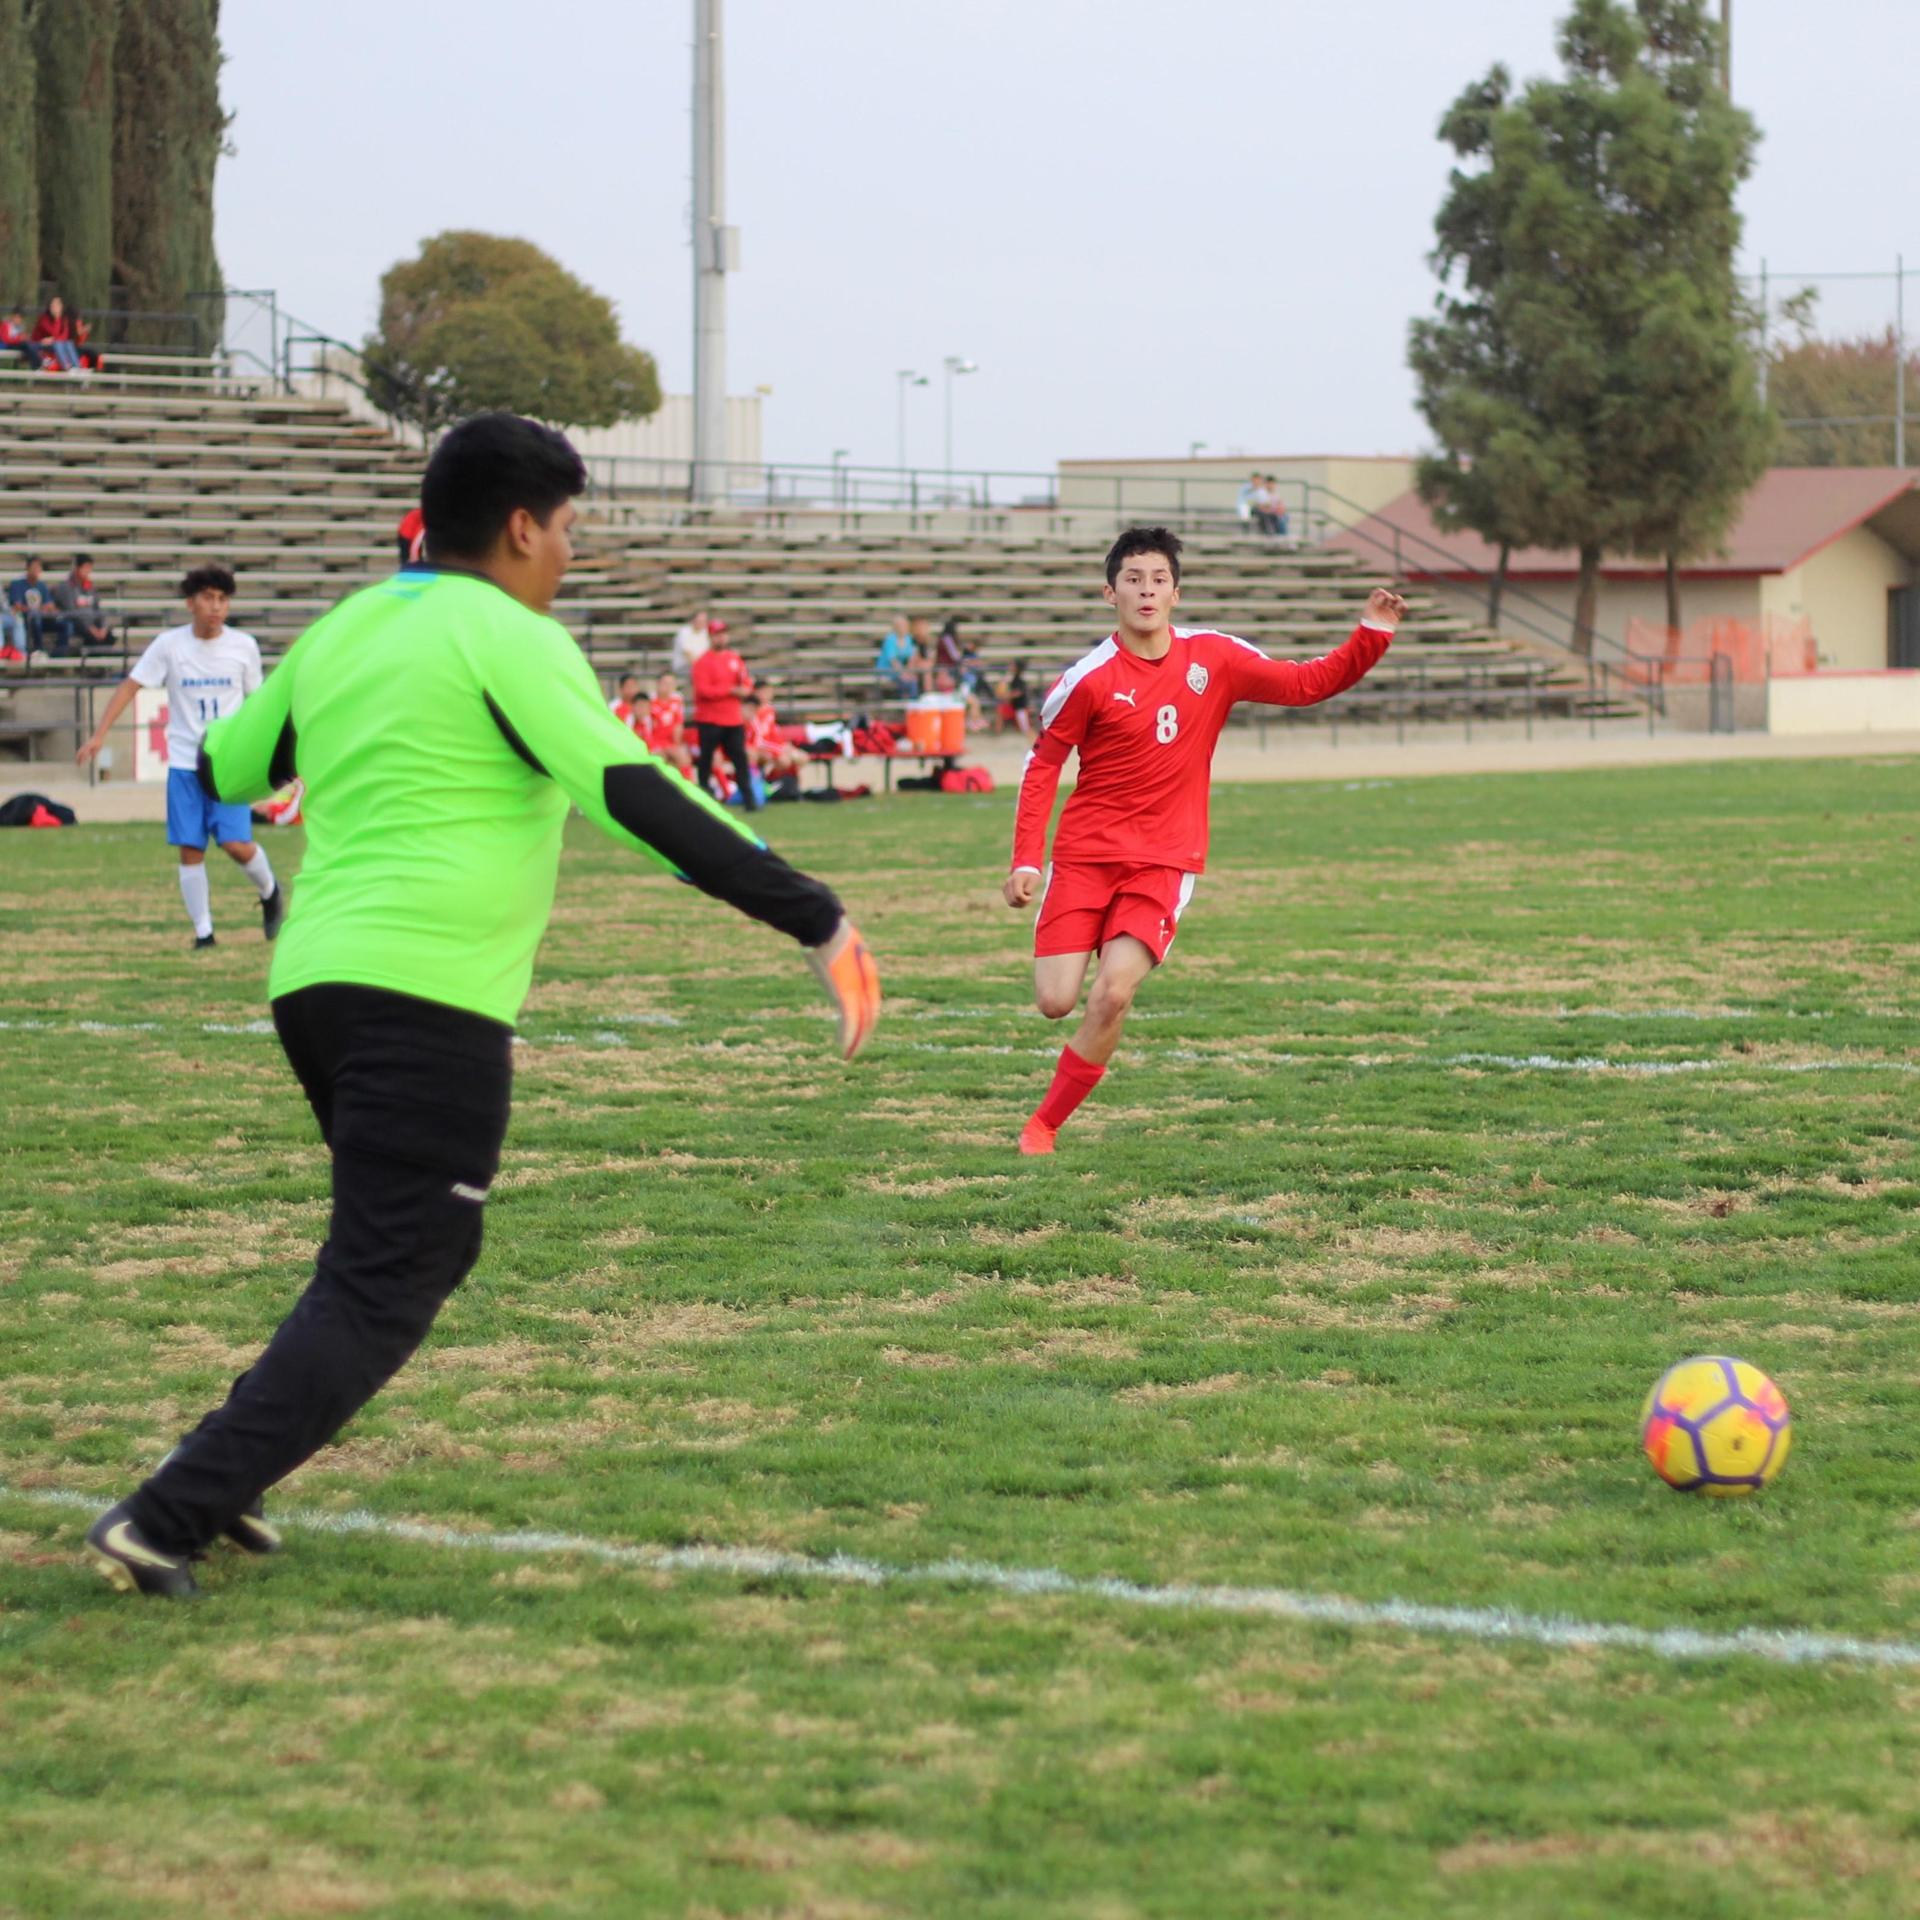 Francisco Chavez Running to Attack the Ball